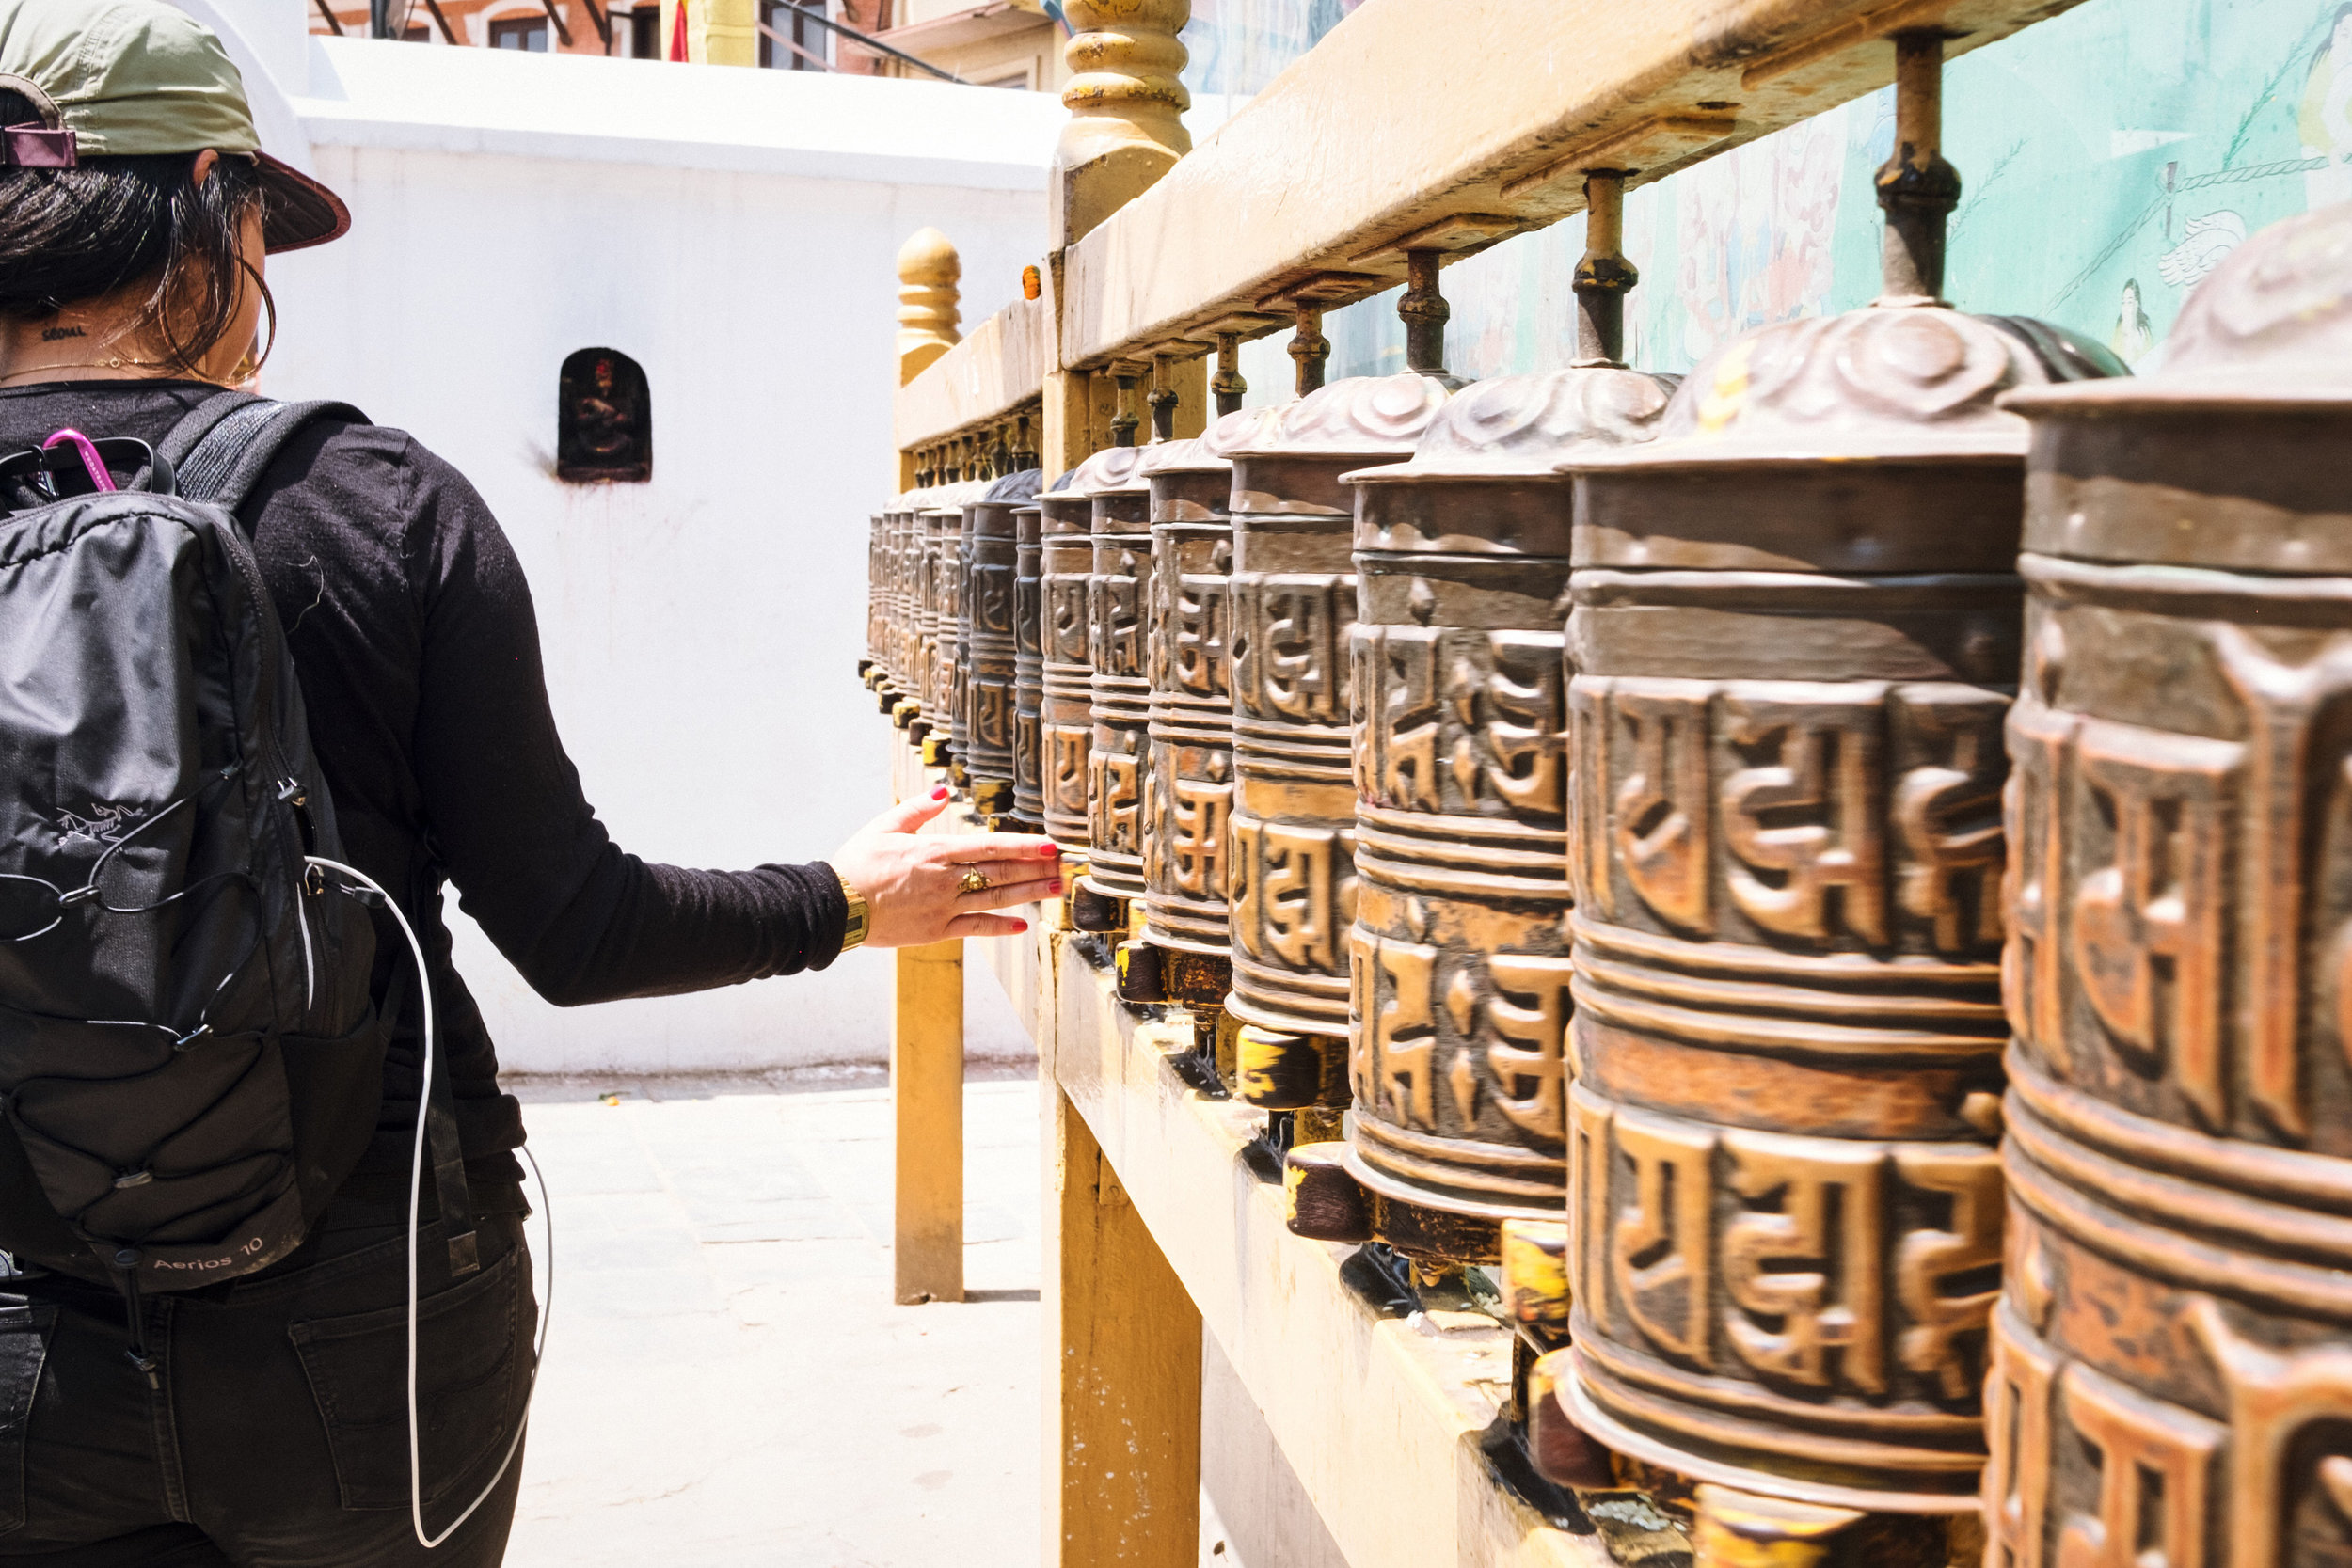 Always walk to the left  - of prayer wheels and stupas, a sign of respect in the Buddhist tradition. By walking clockwise around a stupa, it reminds us to keep Buddha's teaching in the center of our lives.